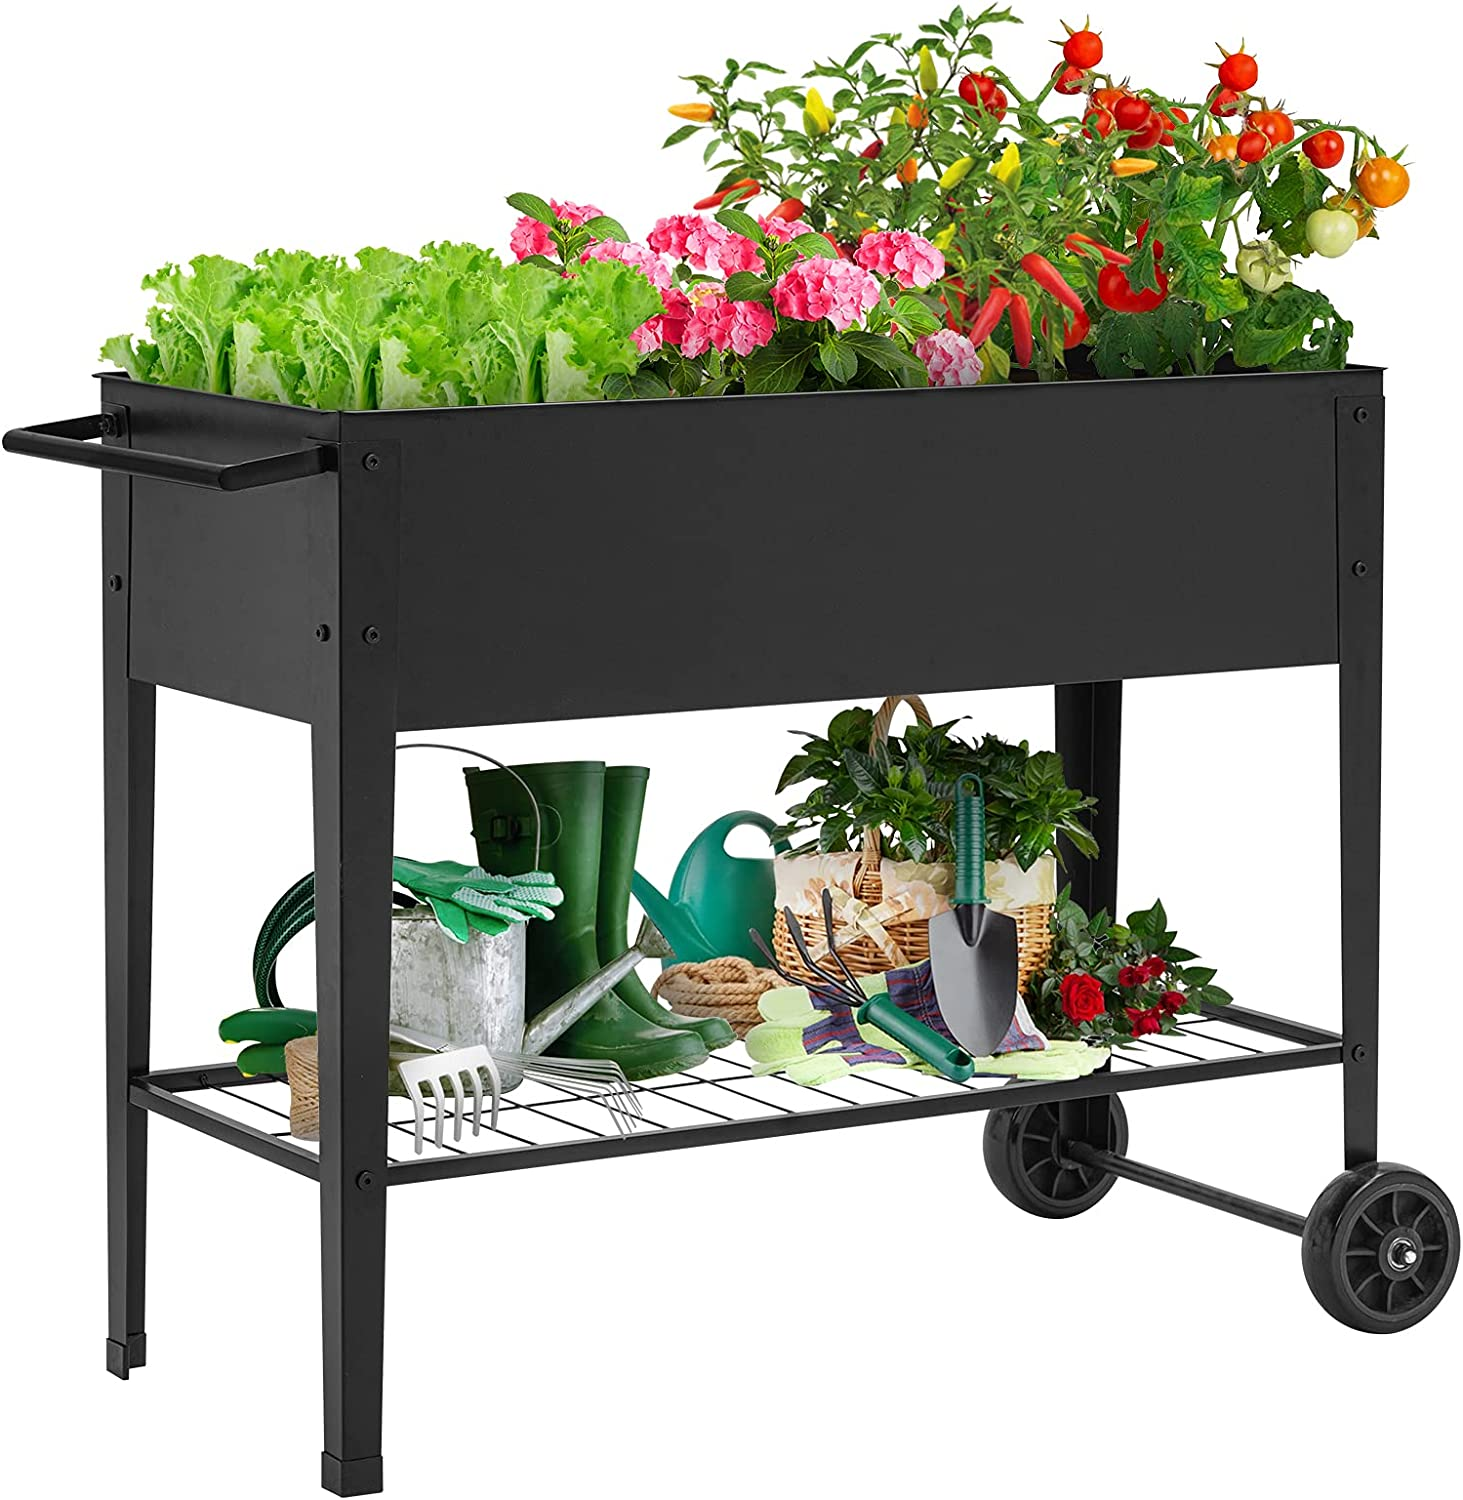 KINGSO Raised Garden Bed Elevated Planter Box Outdoor on Wheels Mobile Planter Garden Bed Box for Herb Vegetable Flower Backyard Patio Durable Steel Planter with Shelf, 42